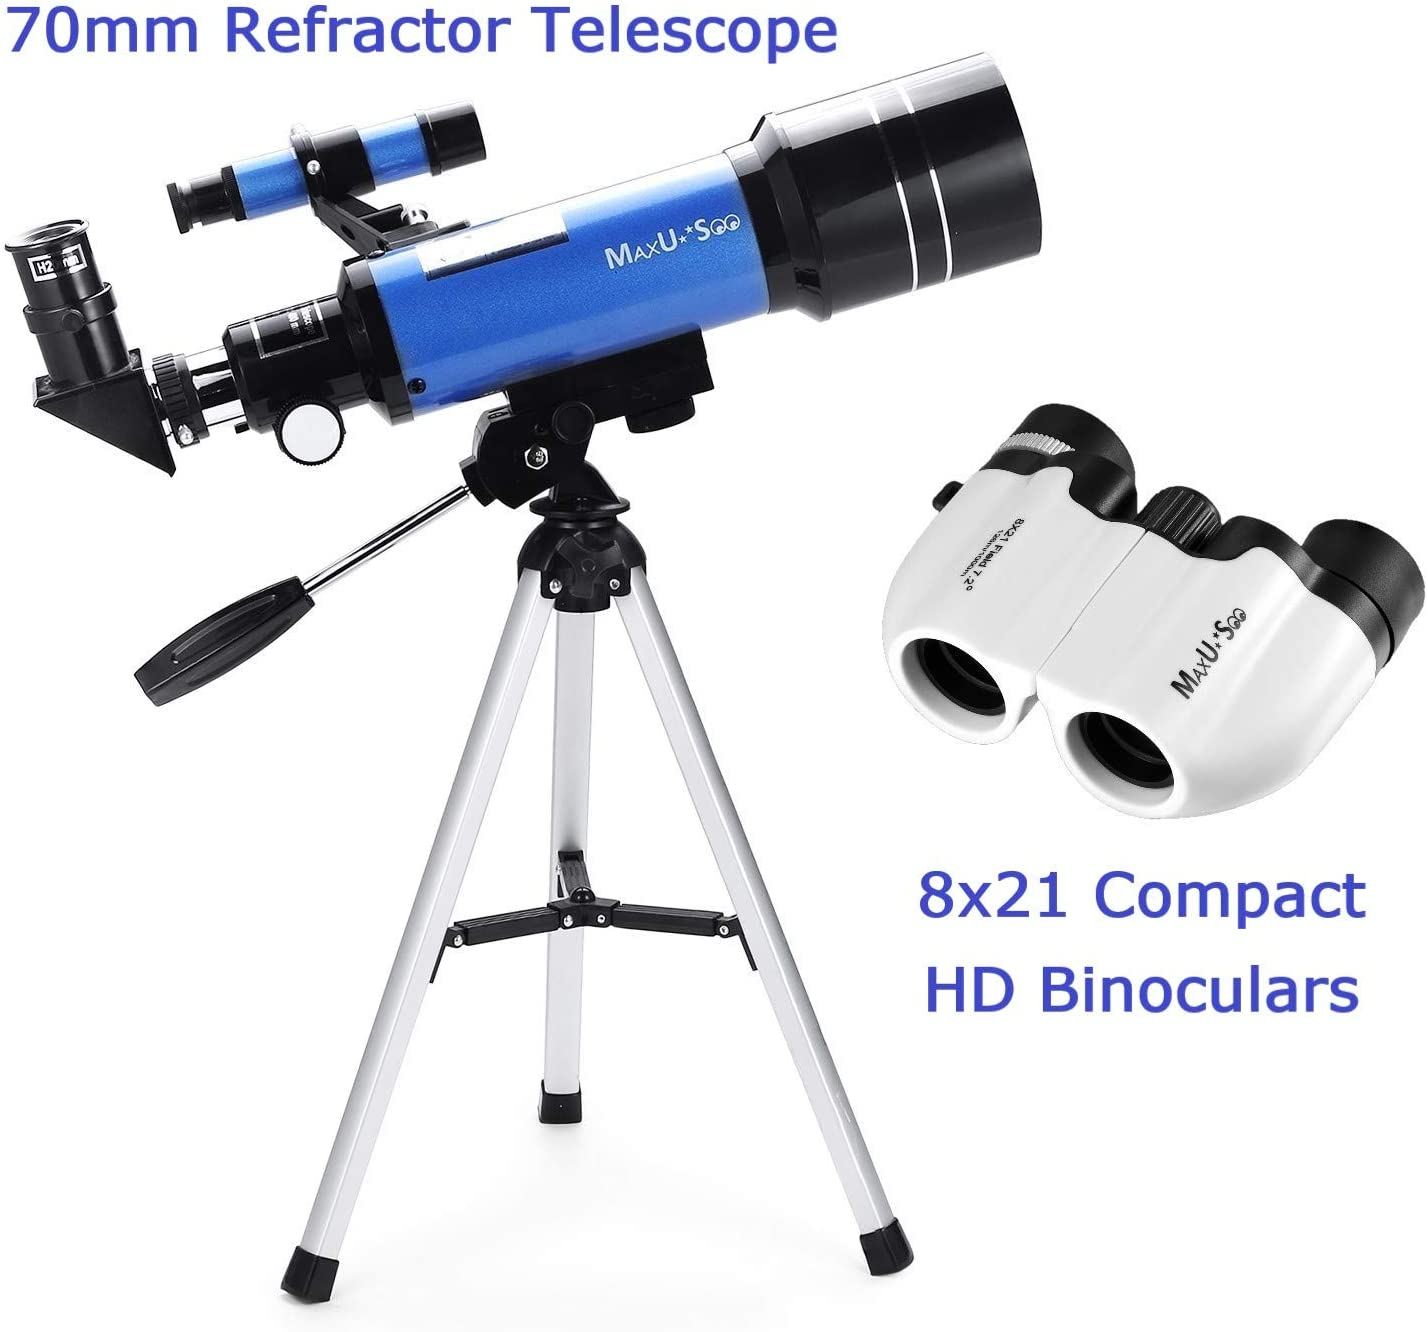 MaxUSee Travel Scope with Backpack 70mm Refractor Telescope /& 10X50 Full-size HD Binoculars for Moon Viewing Bird Watching Sightseeing